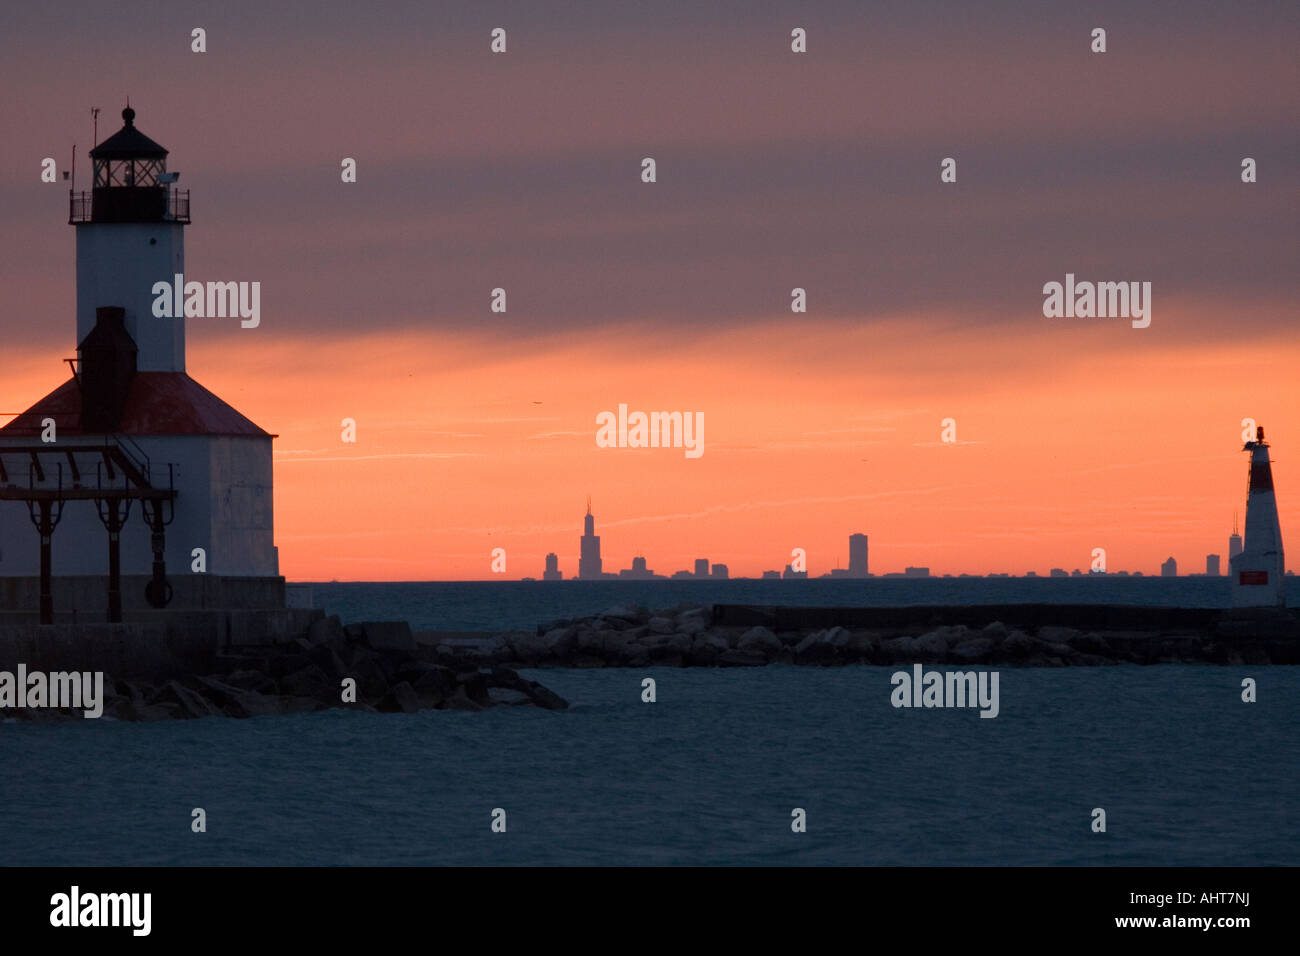 Lighthouse At Washington Park In Michigan City Indiana With Chicago Stock Photo Alamy